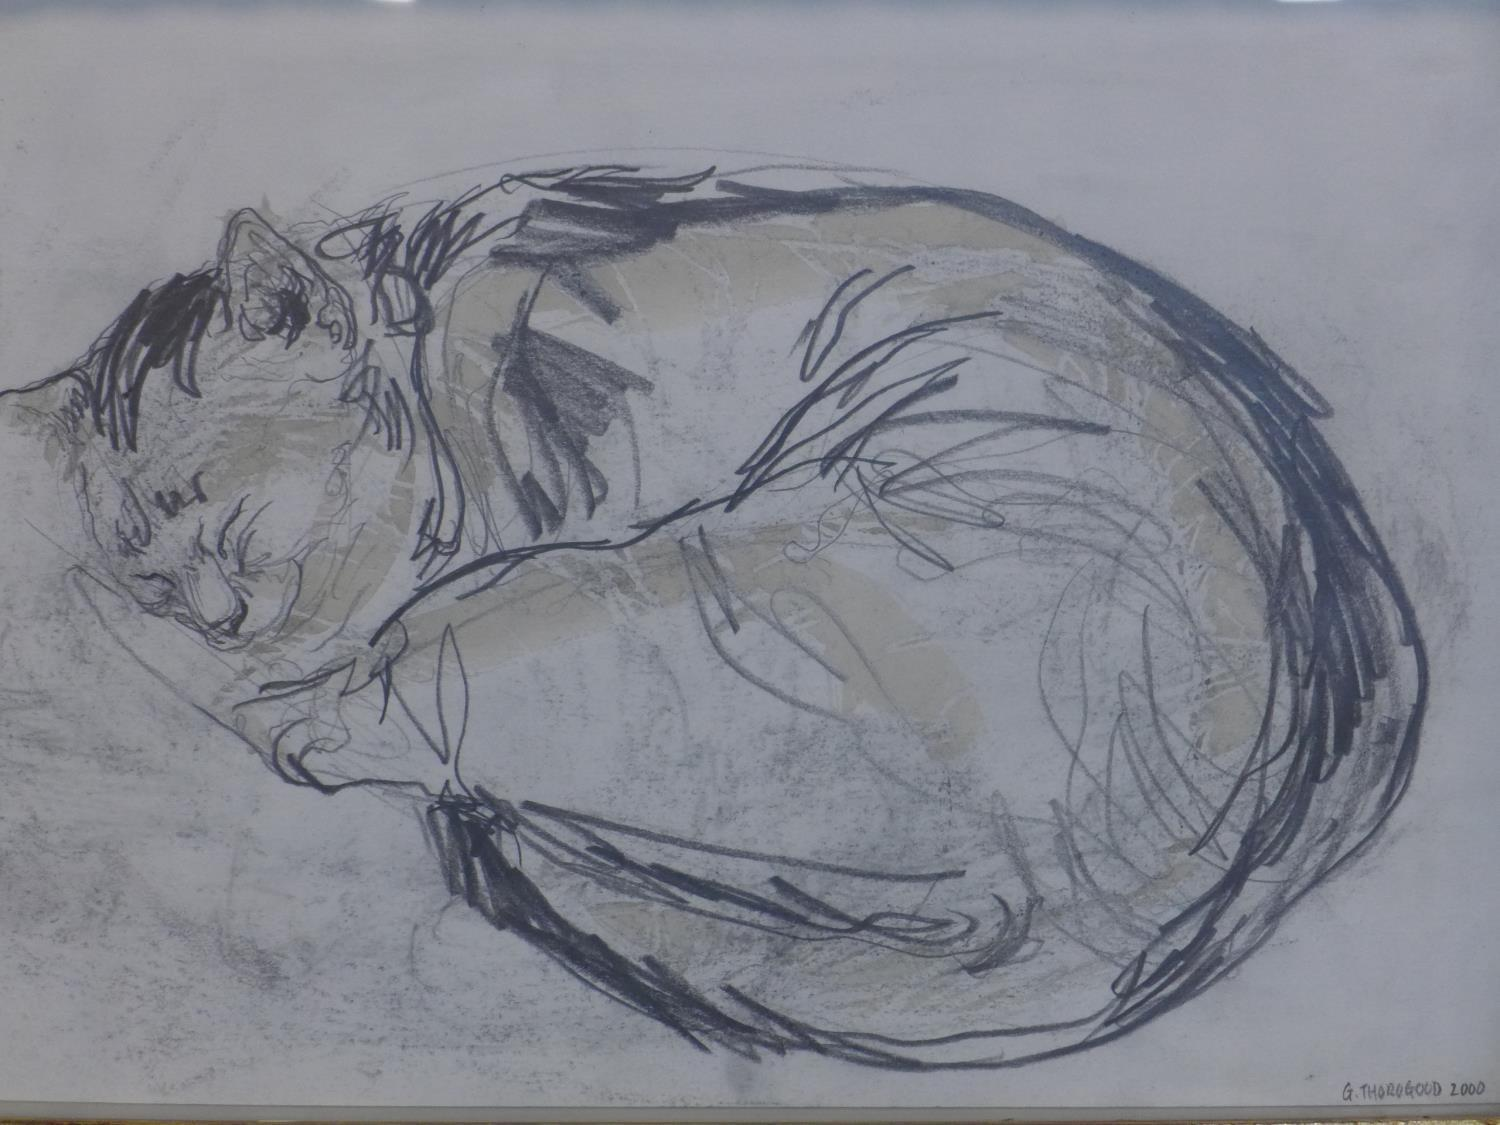 Lot 51 - Contemporary British draughtsman, sleeping cat, pencil and watercolour, signed and dated 'G.